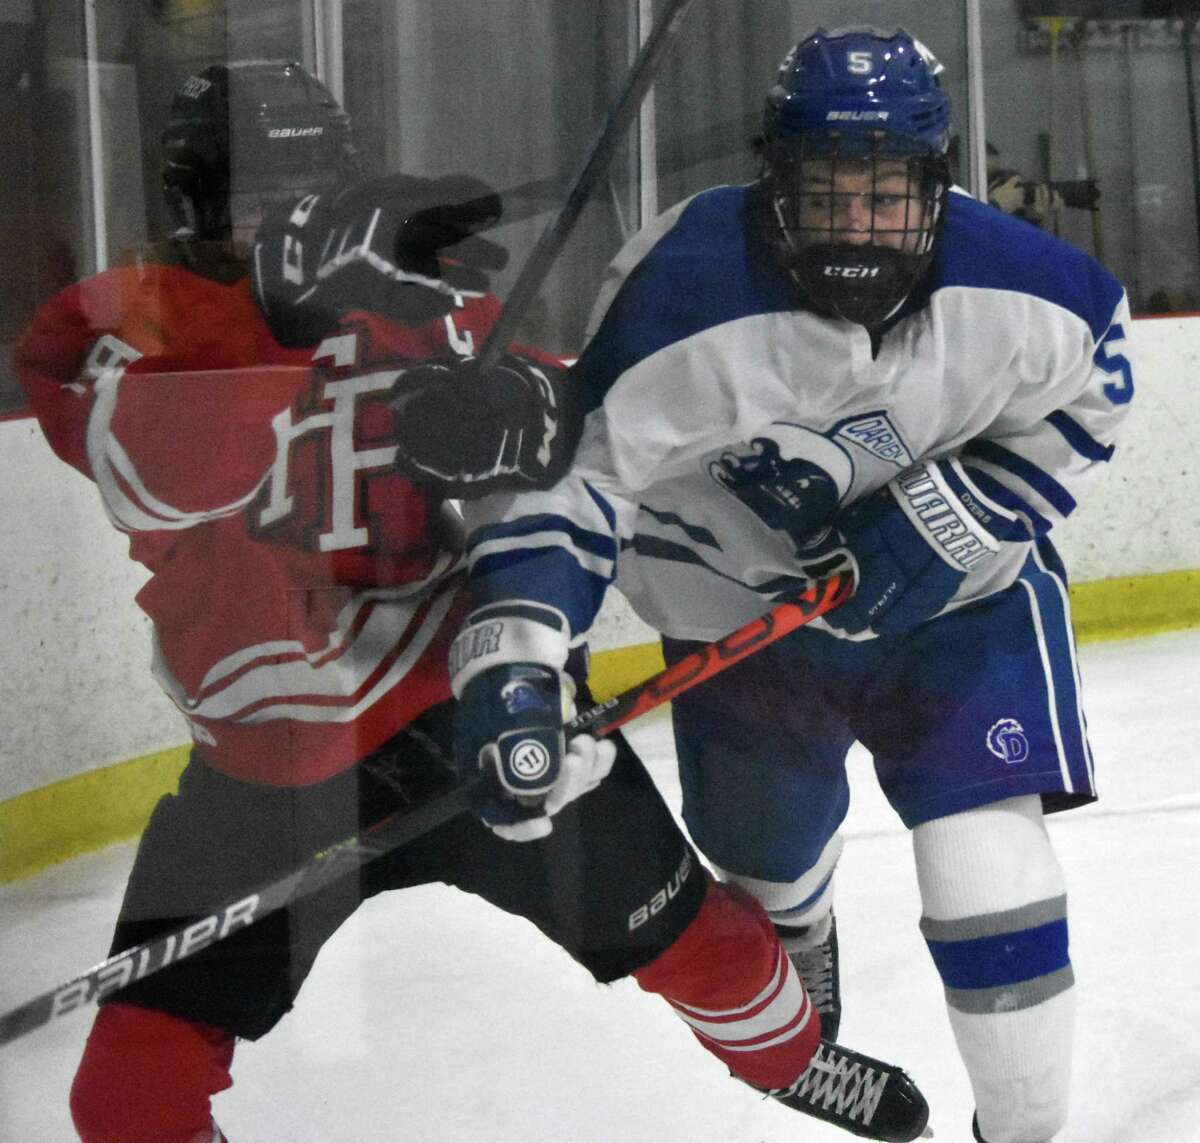 Action between Fairfield Prep and Darien hockey at the Darien Ice House on Saturday.